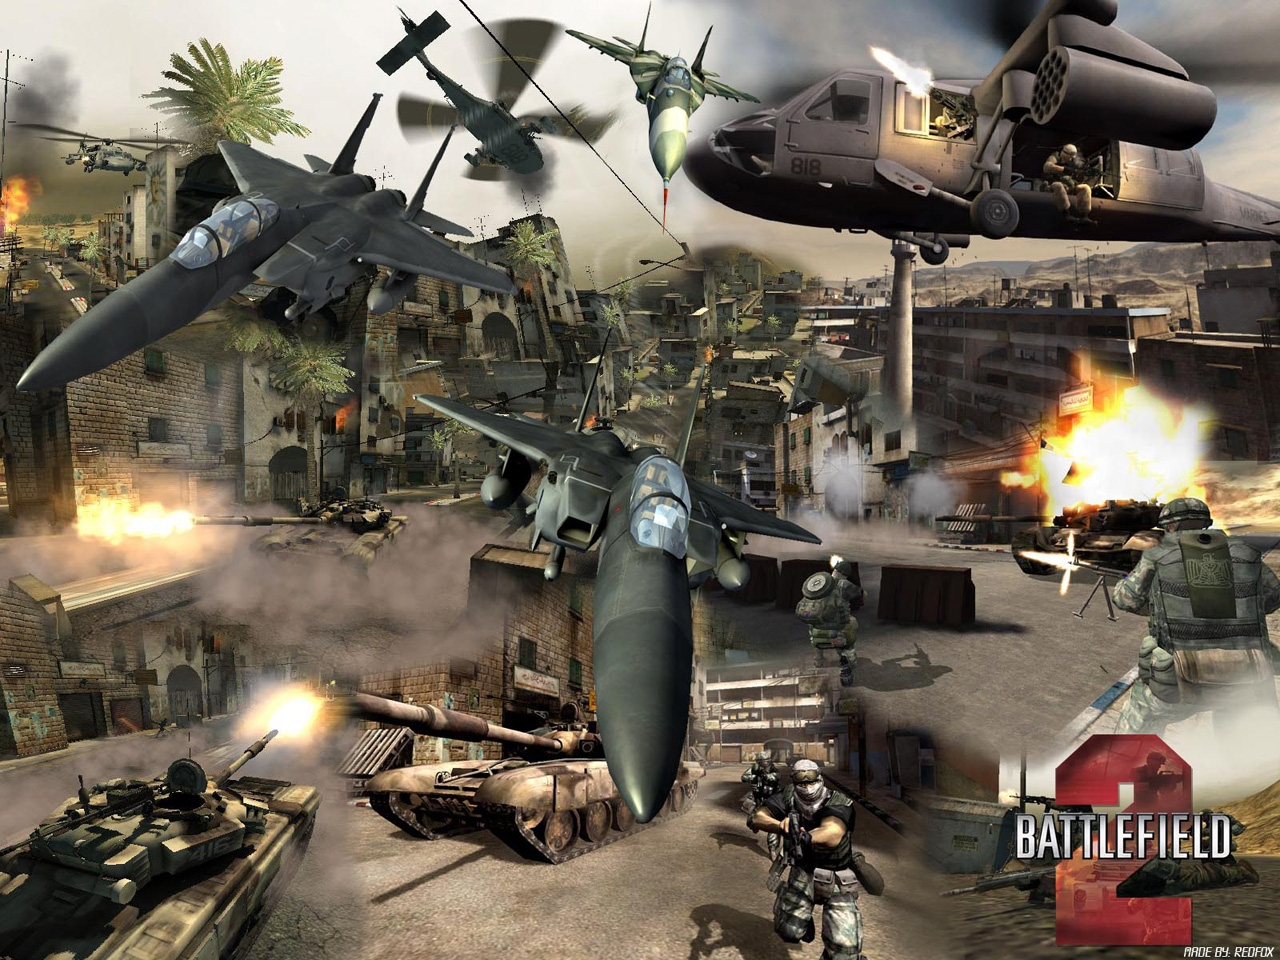 Battlefield 1 Game Free Download Full Version Pc